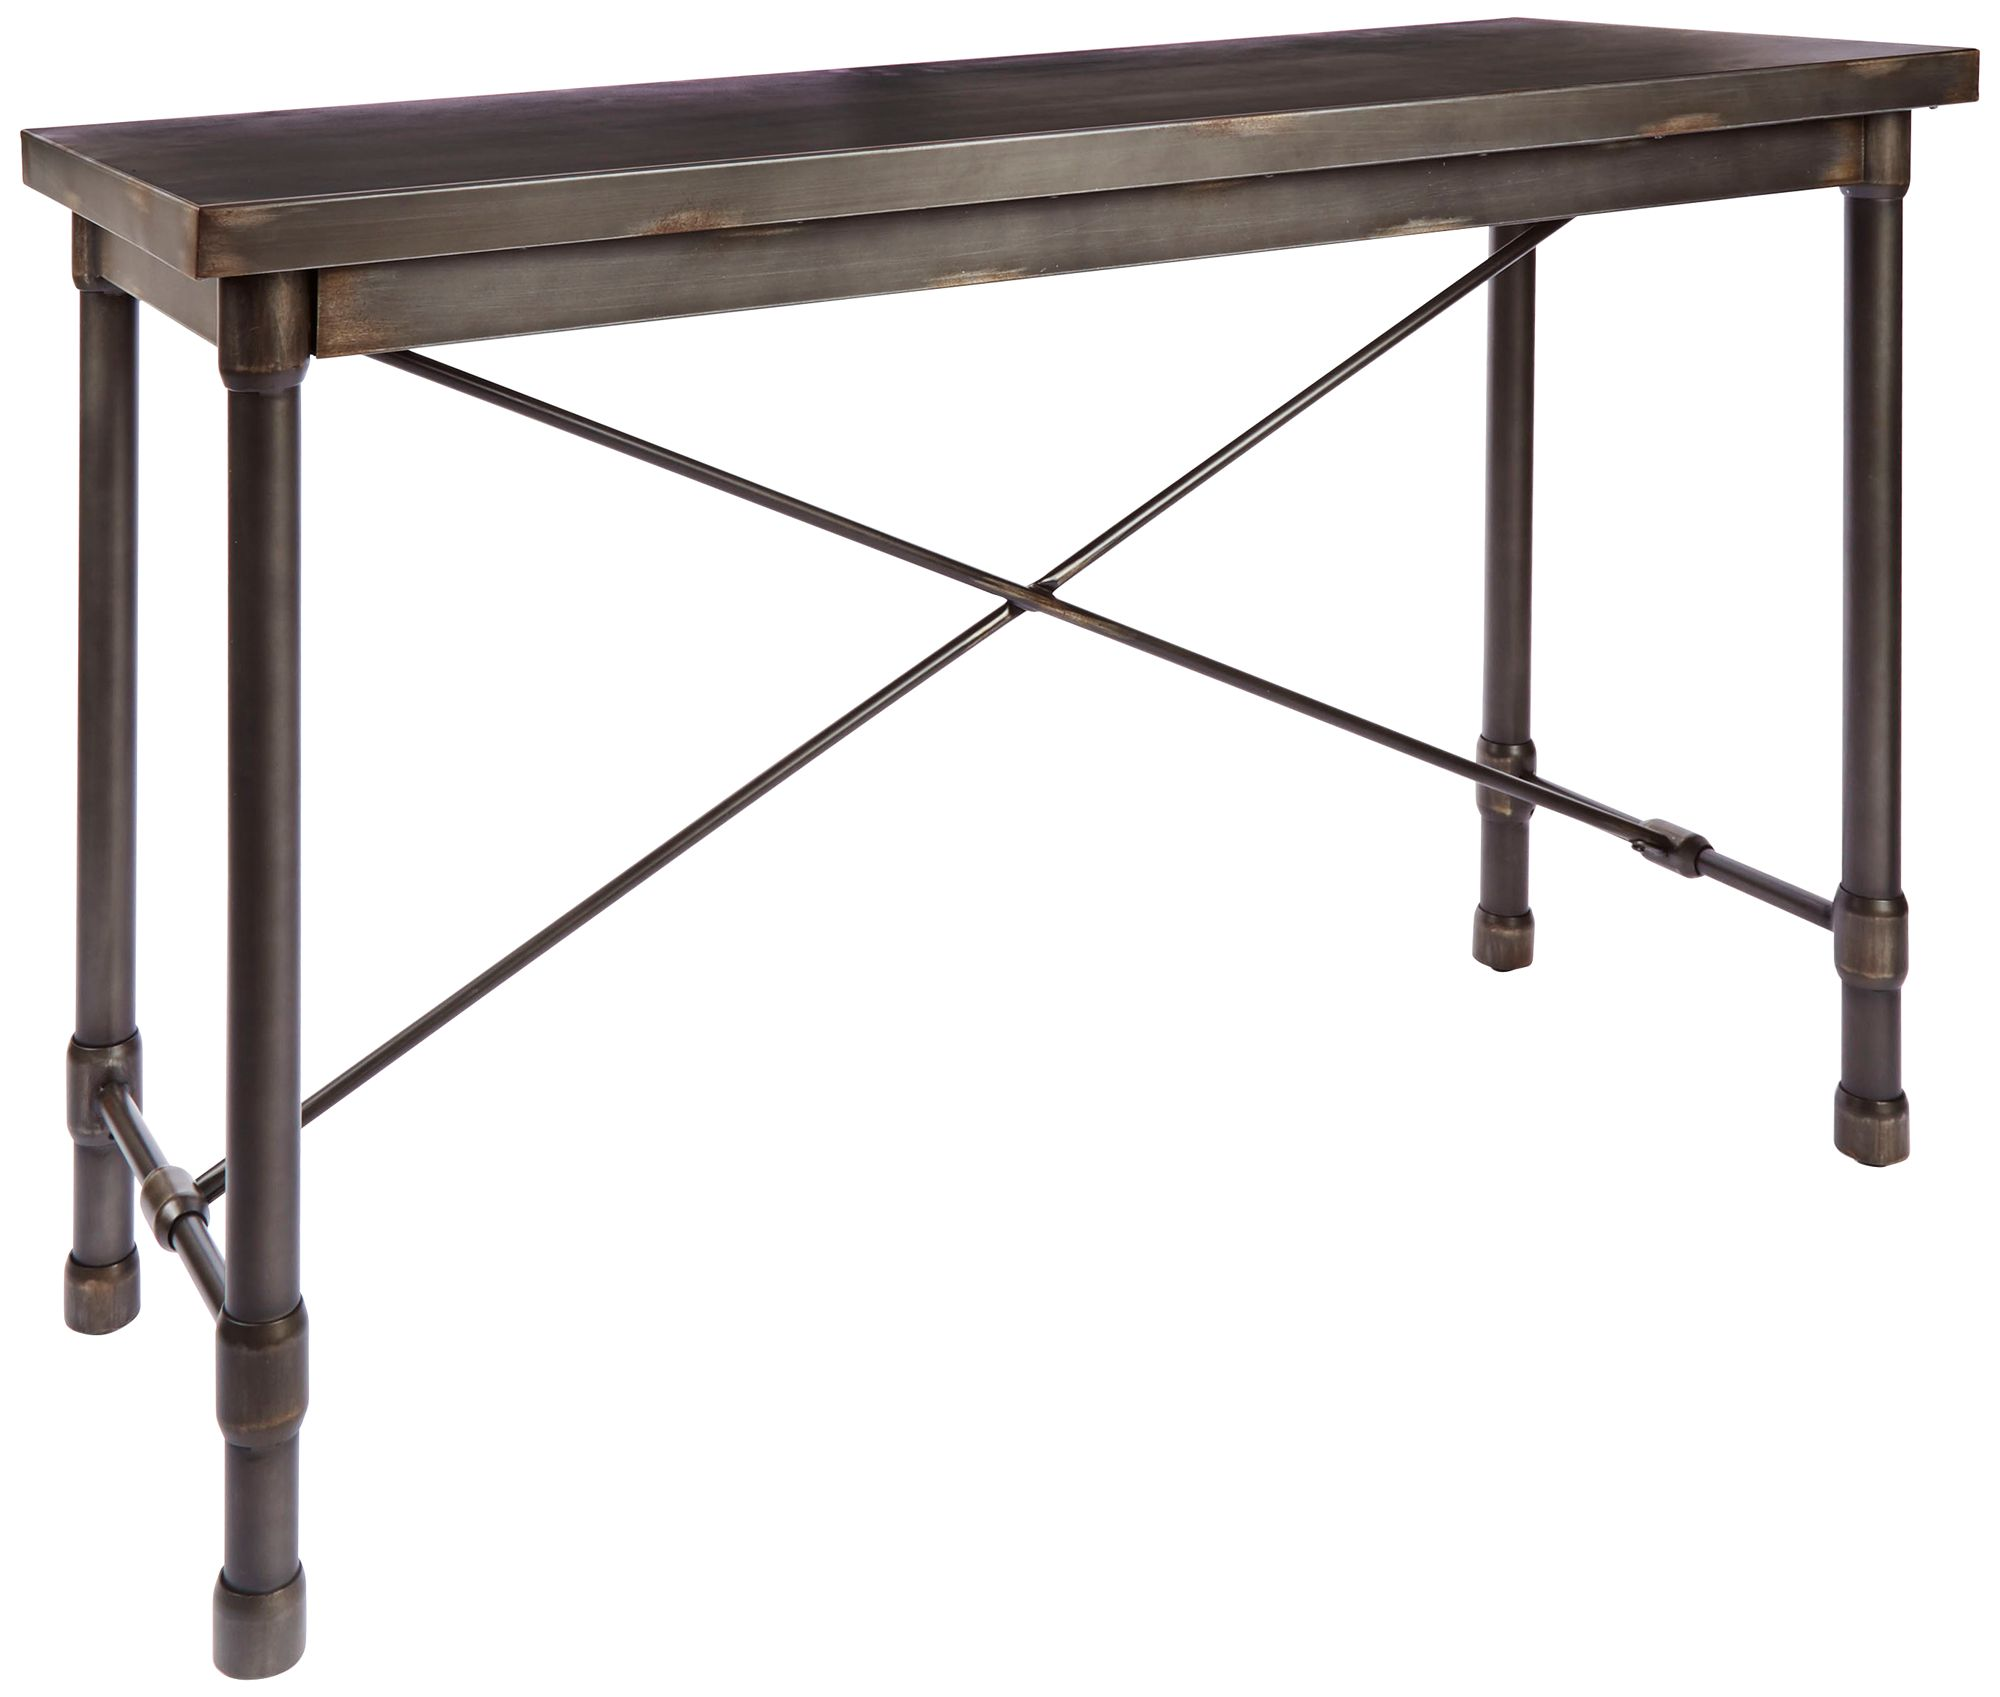 Merveilleux Oxford Industrial Bronzed Pewter Metal Console Table